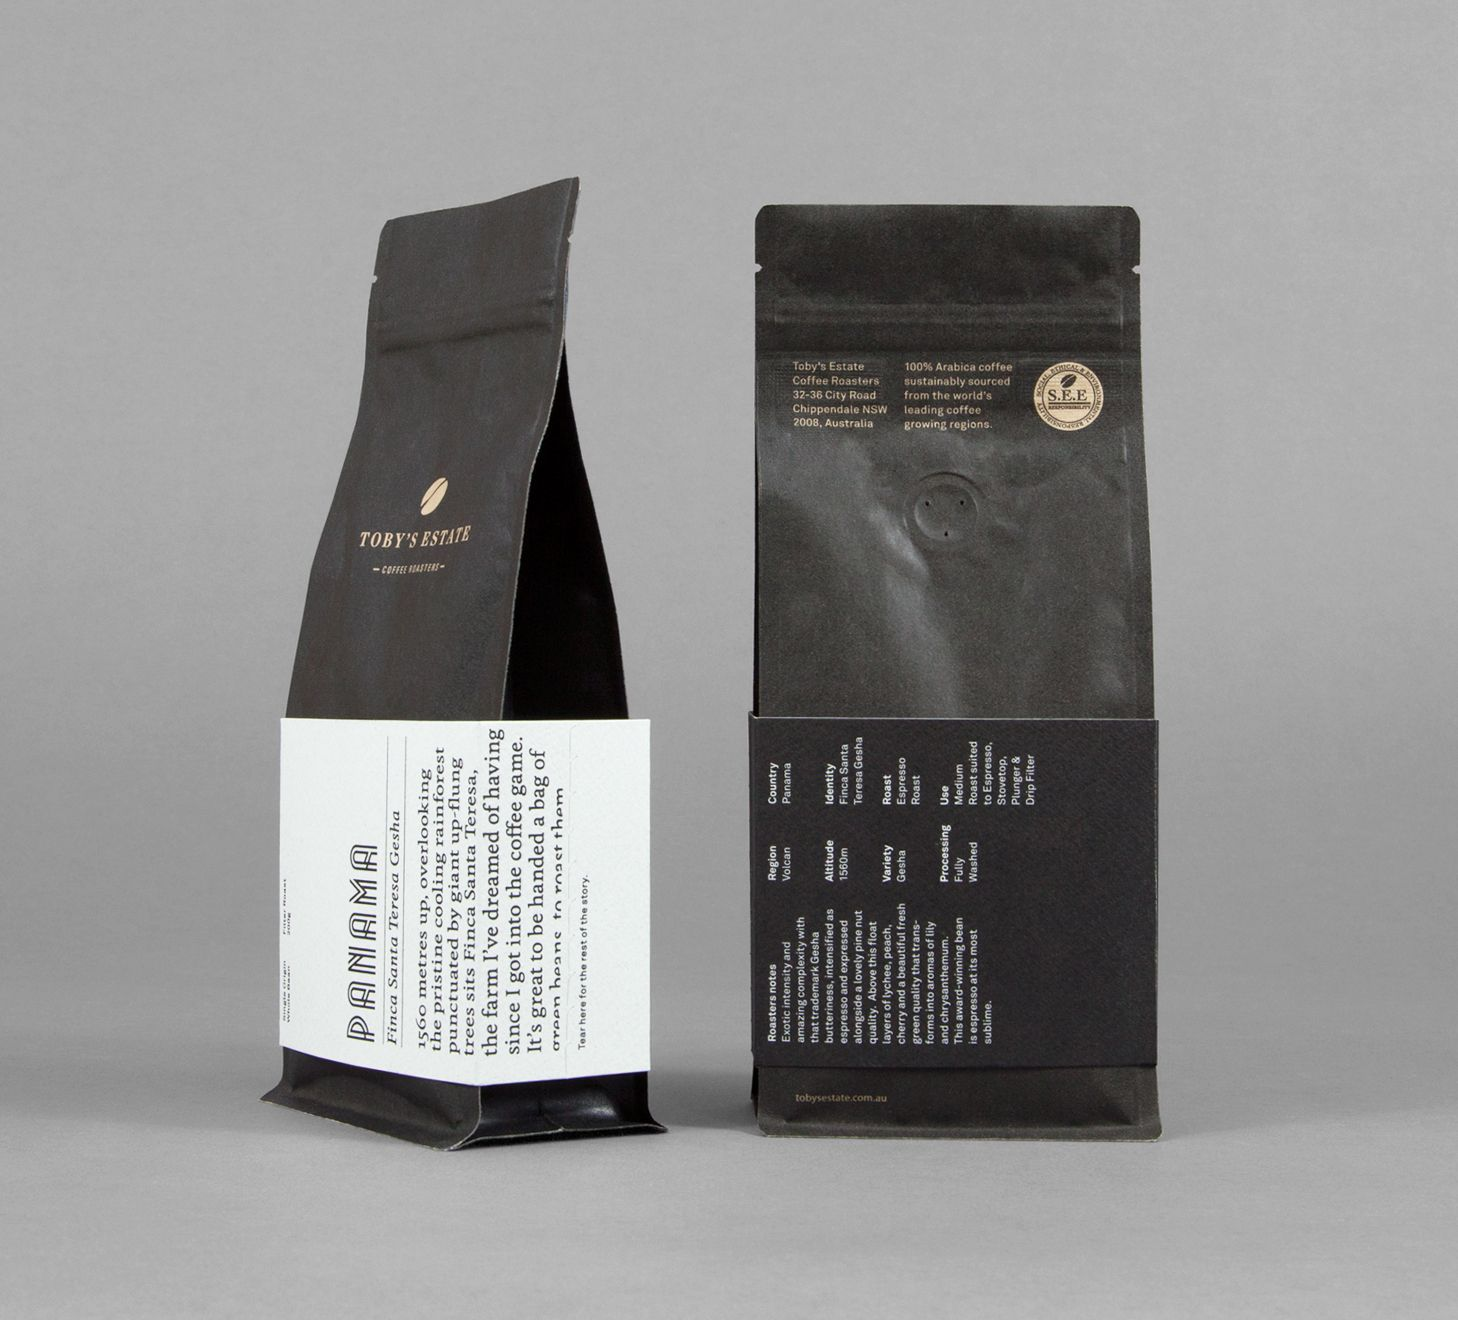 Pin By Kasiatheslav On Best Tummy Control Shapewear Coffee Packaging Coffee Bag Design Graphic Design Packaging